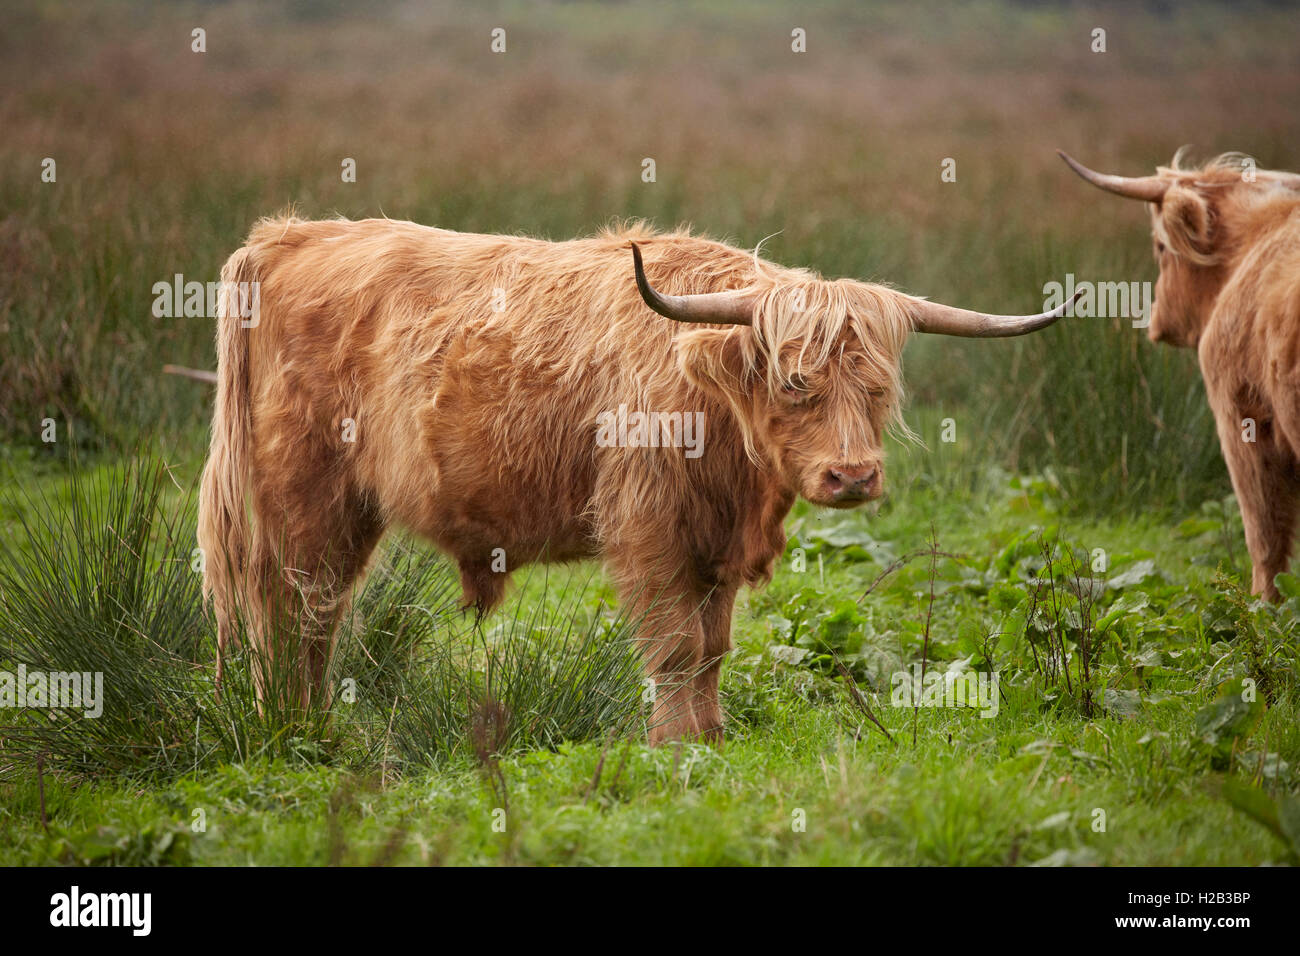 Highland bull at Alverstone on the Isle of Wight - Stock Image